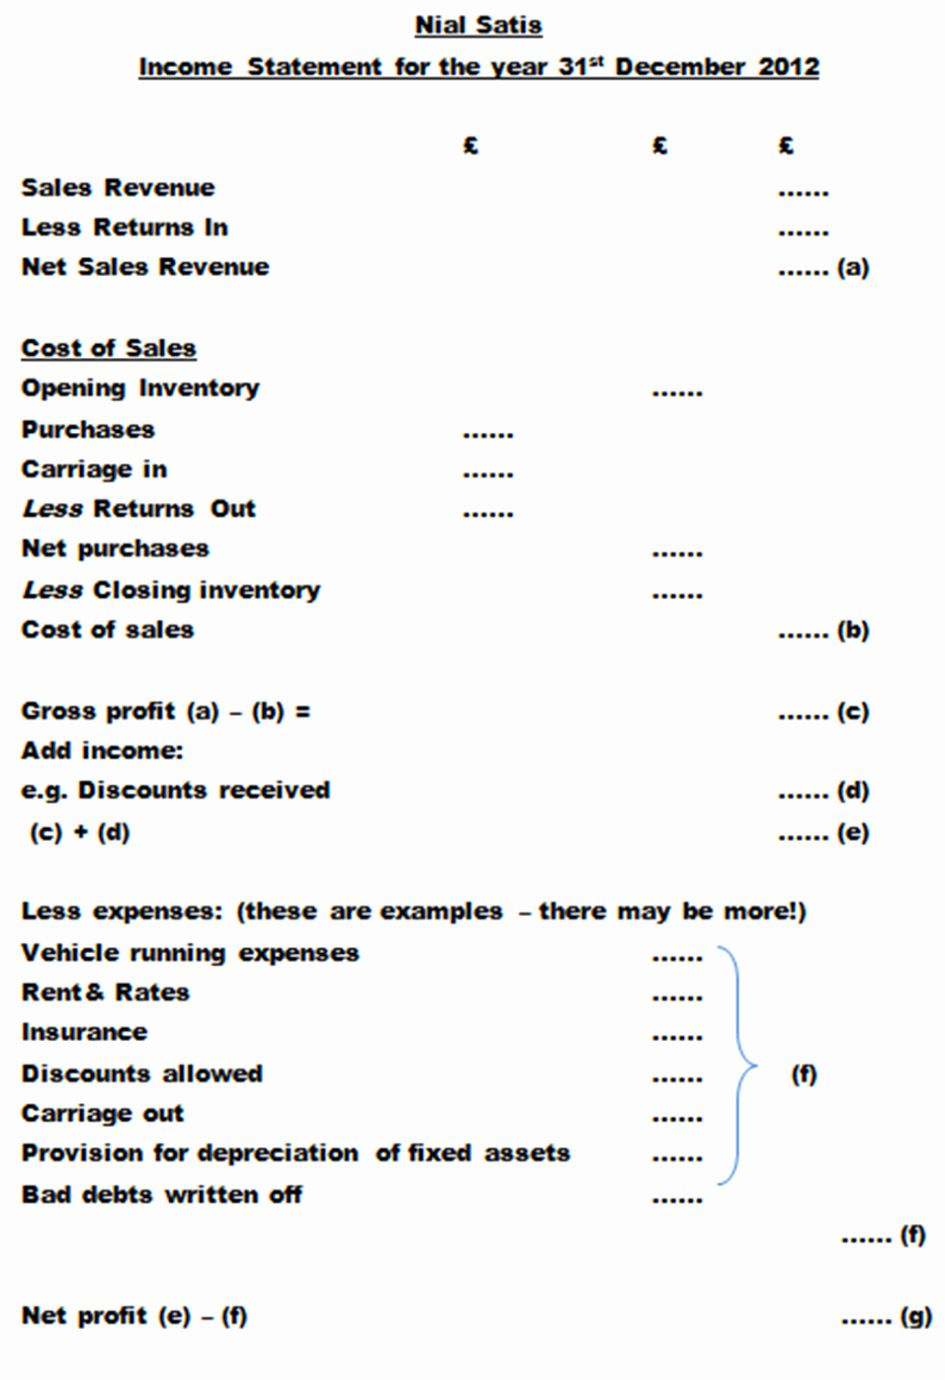 Simplified Income Statement Template In 2020 Statement Template